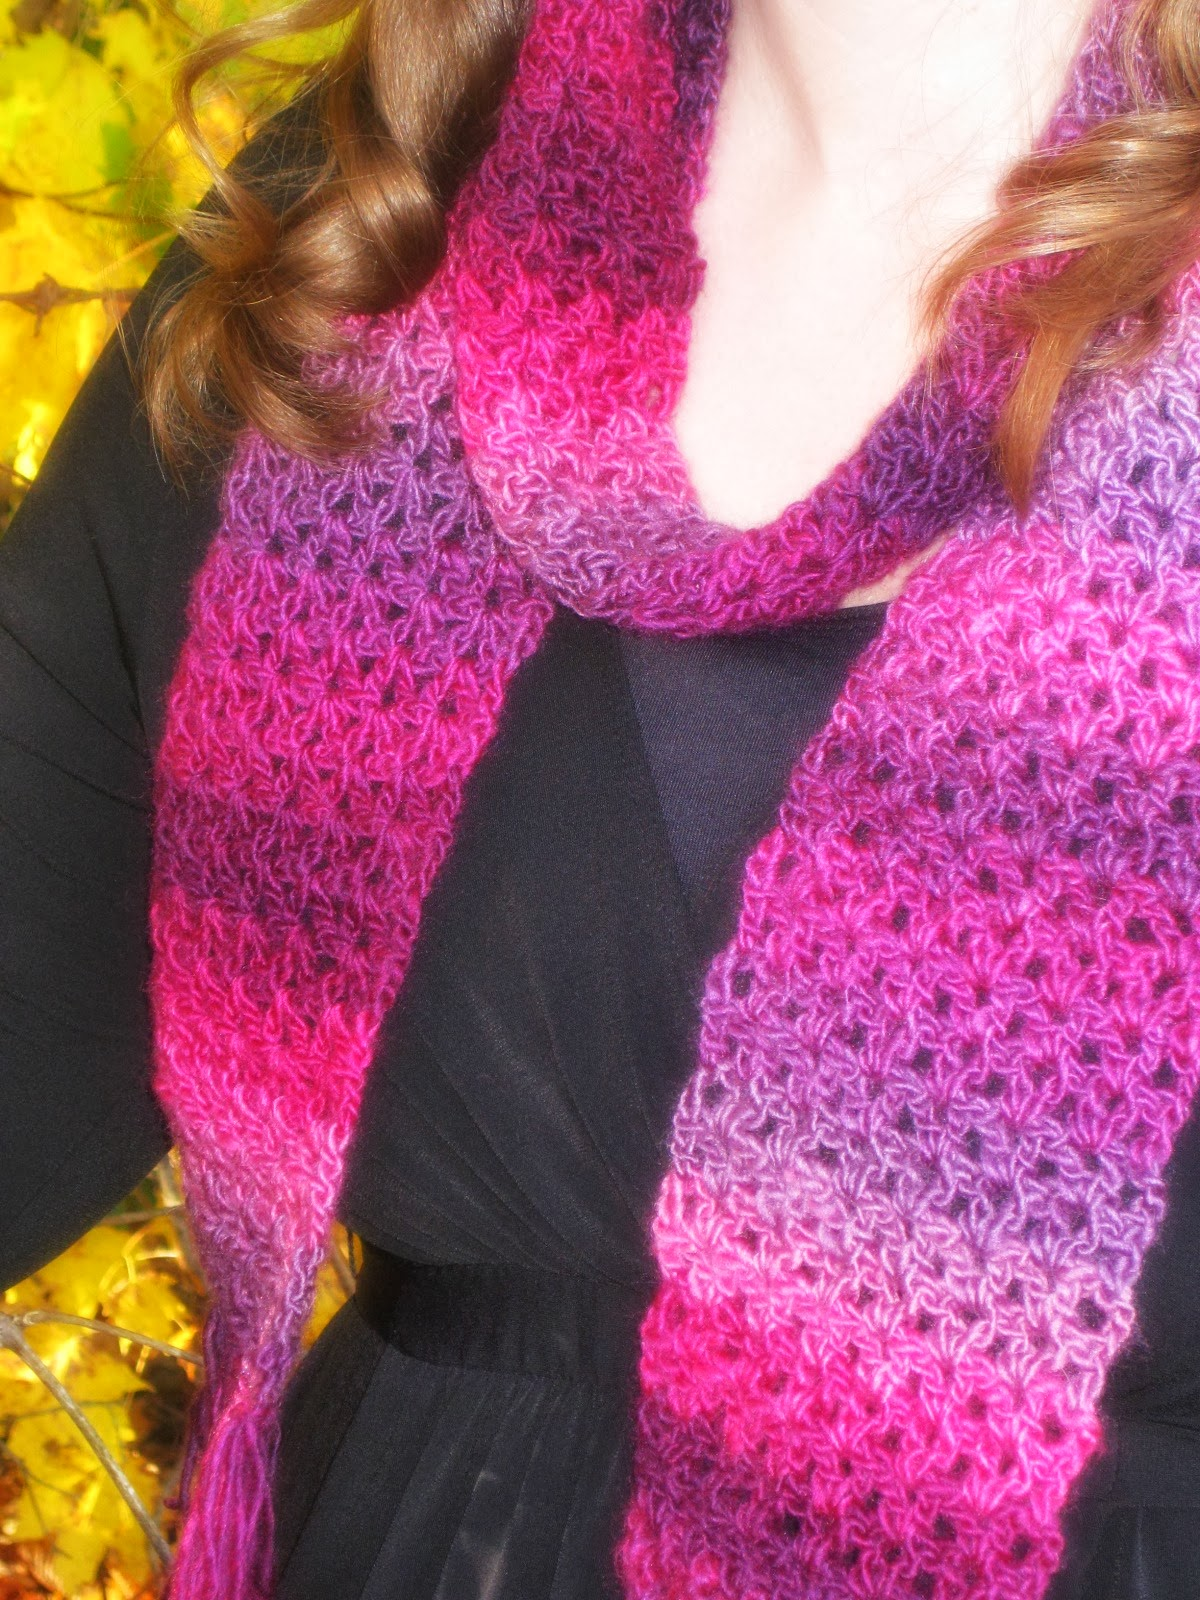 Unforgettable One-Skein Scarf - Free Crochet Pattern ...